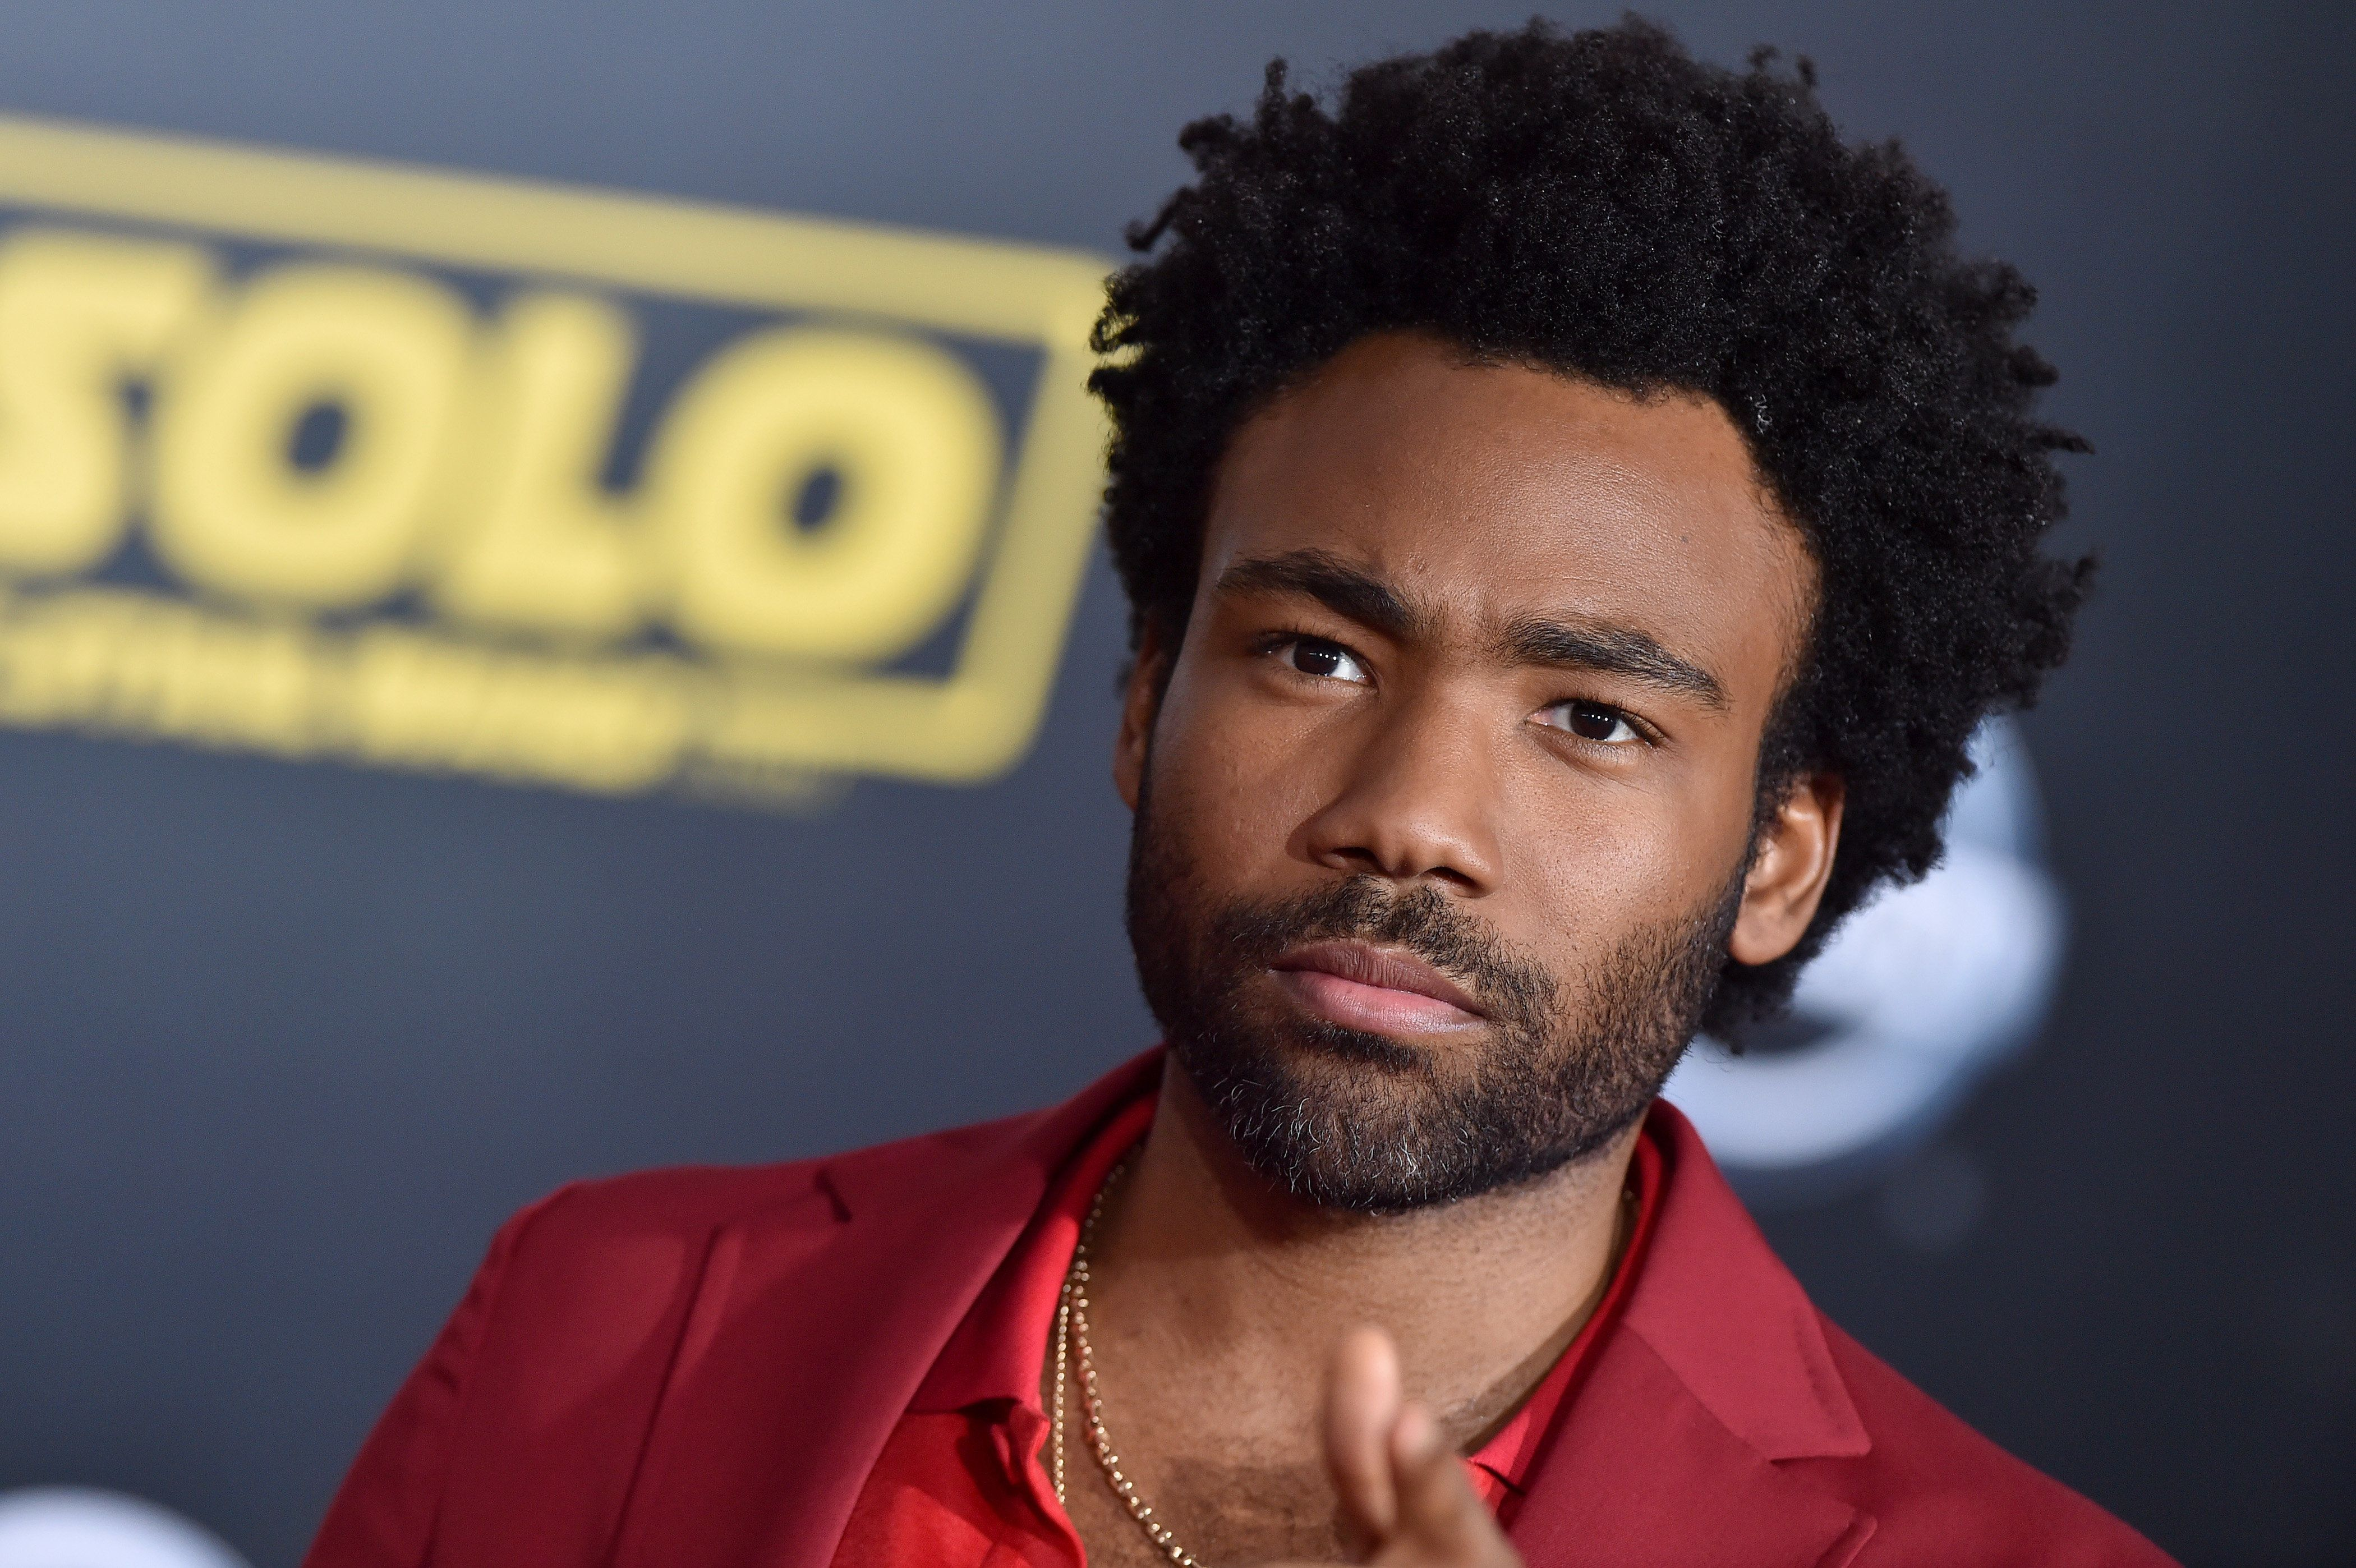 HOLLYWOOD, CA - MAY 10:  Actor Donald Glover arrives at the premiere of Disney Pictures and Lucasfilm's 'Solo: A Star Wars Story' at the El Capitan Theatre on May 10, 2018 in Hollywood, California.  (Photo by Axelle/Bauer-Griffin/FilmMagic)